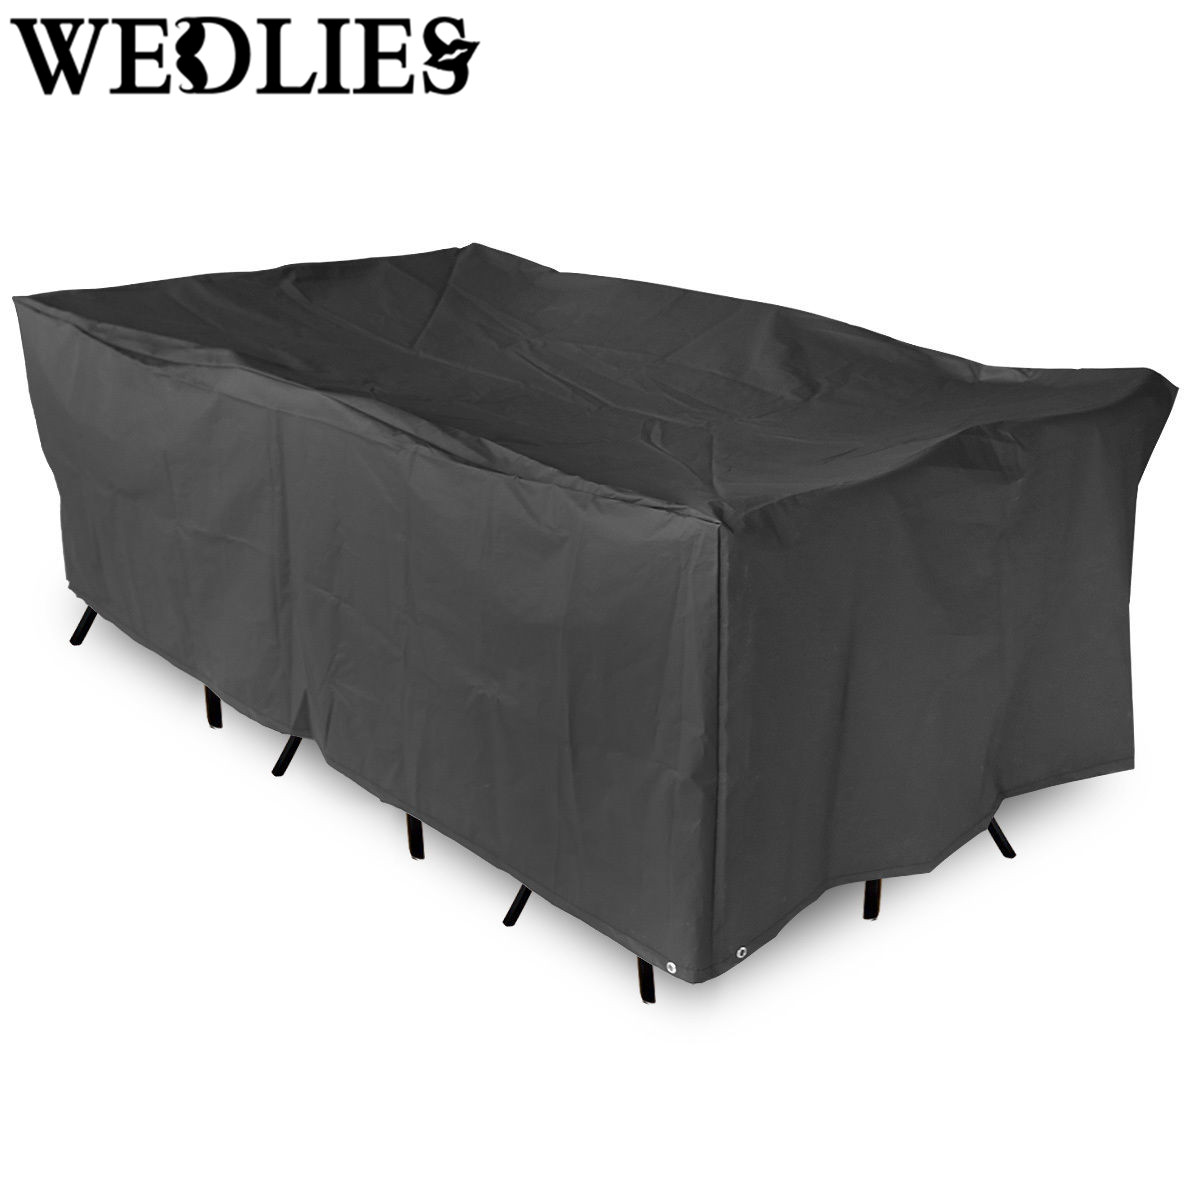 Table And Chair Covers Ebay Personalised Makeup Black Polyester Garden Patio Cover Waterproof